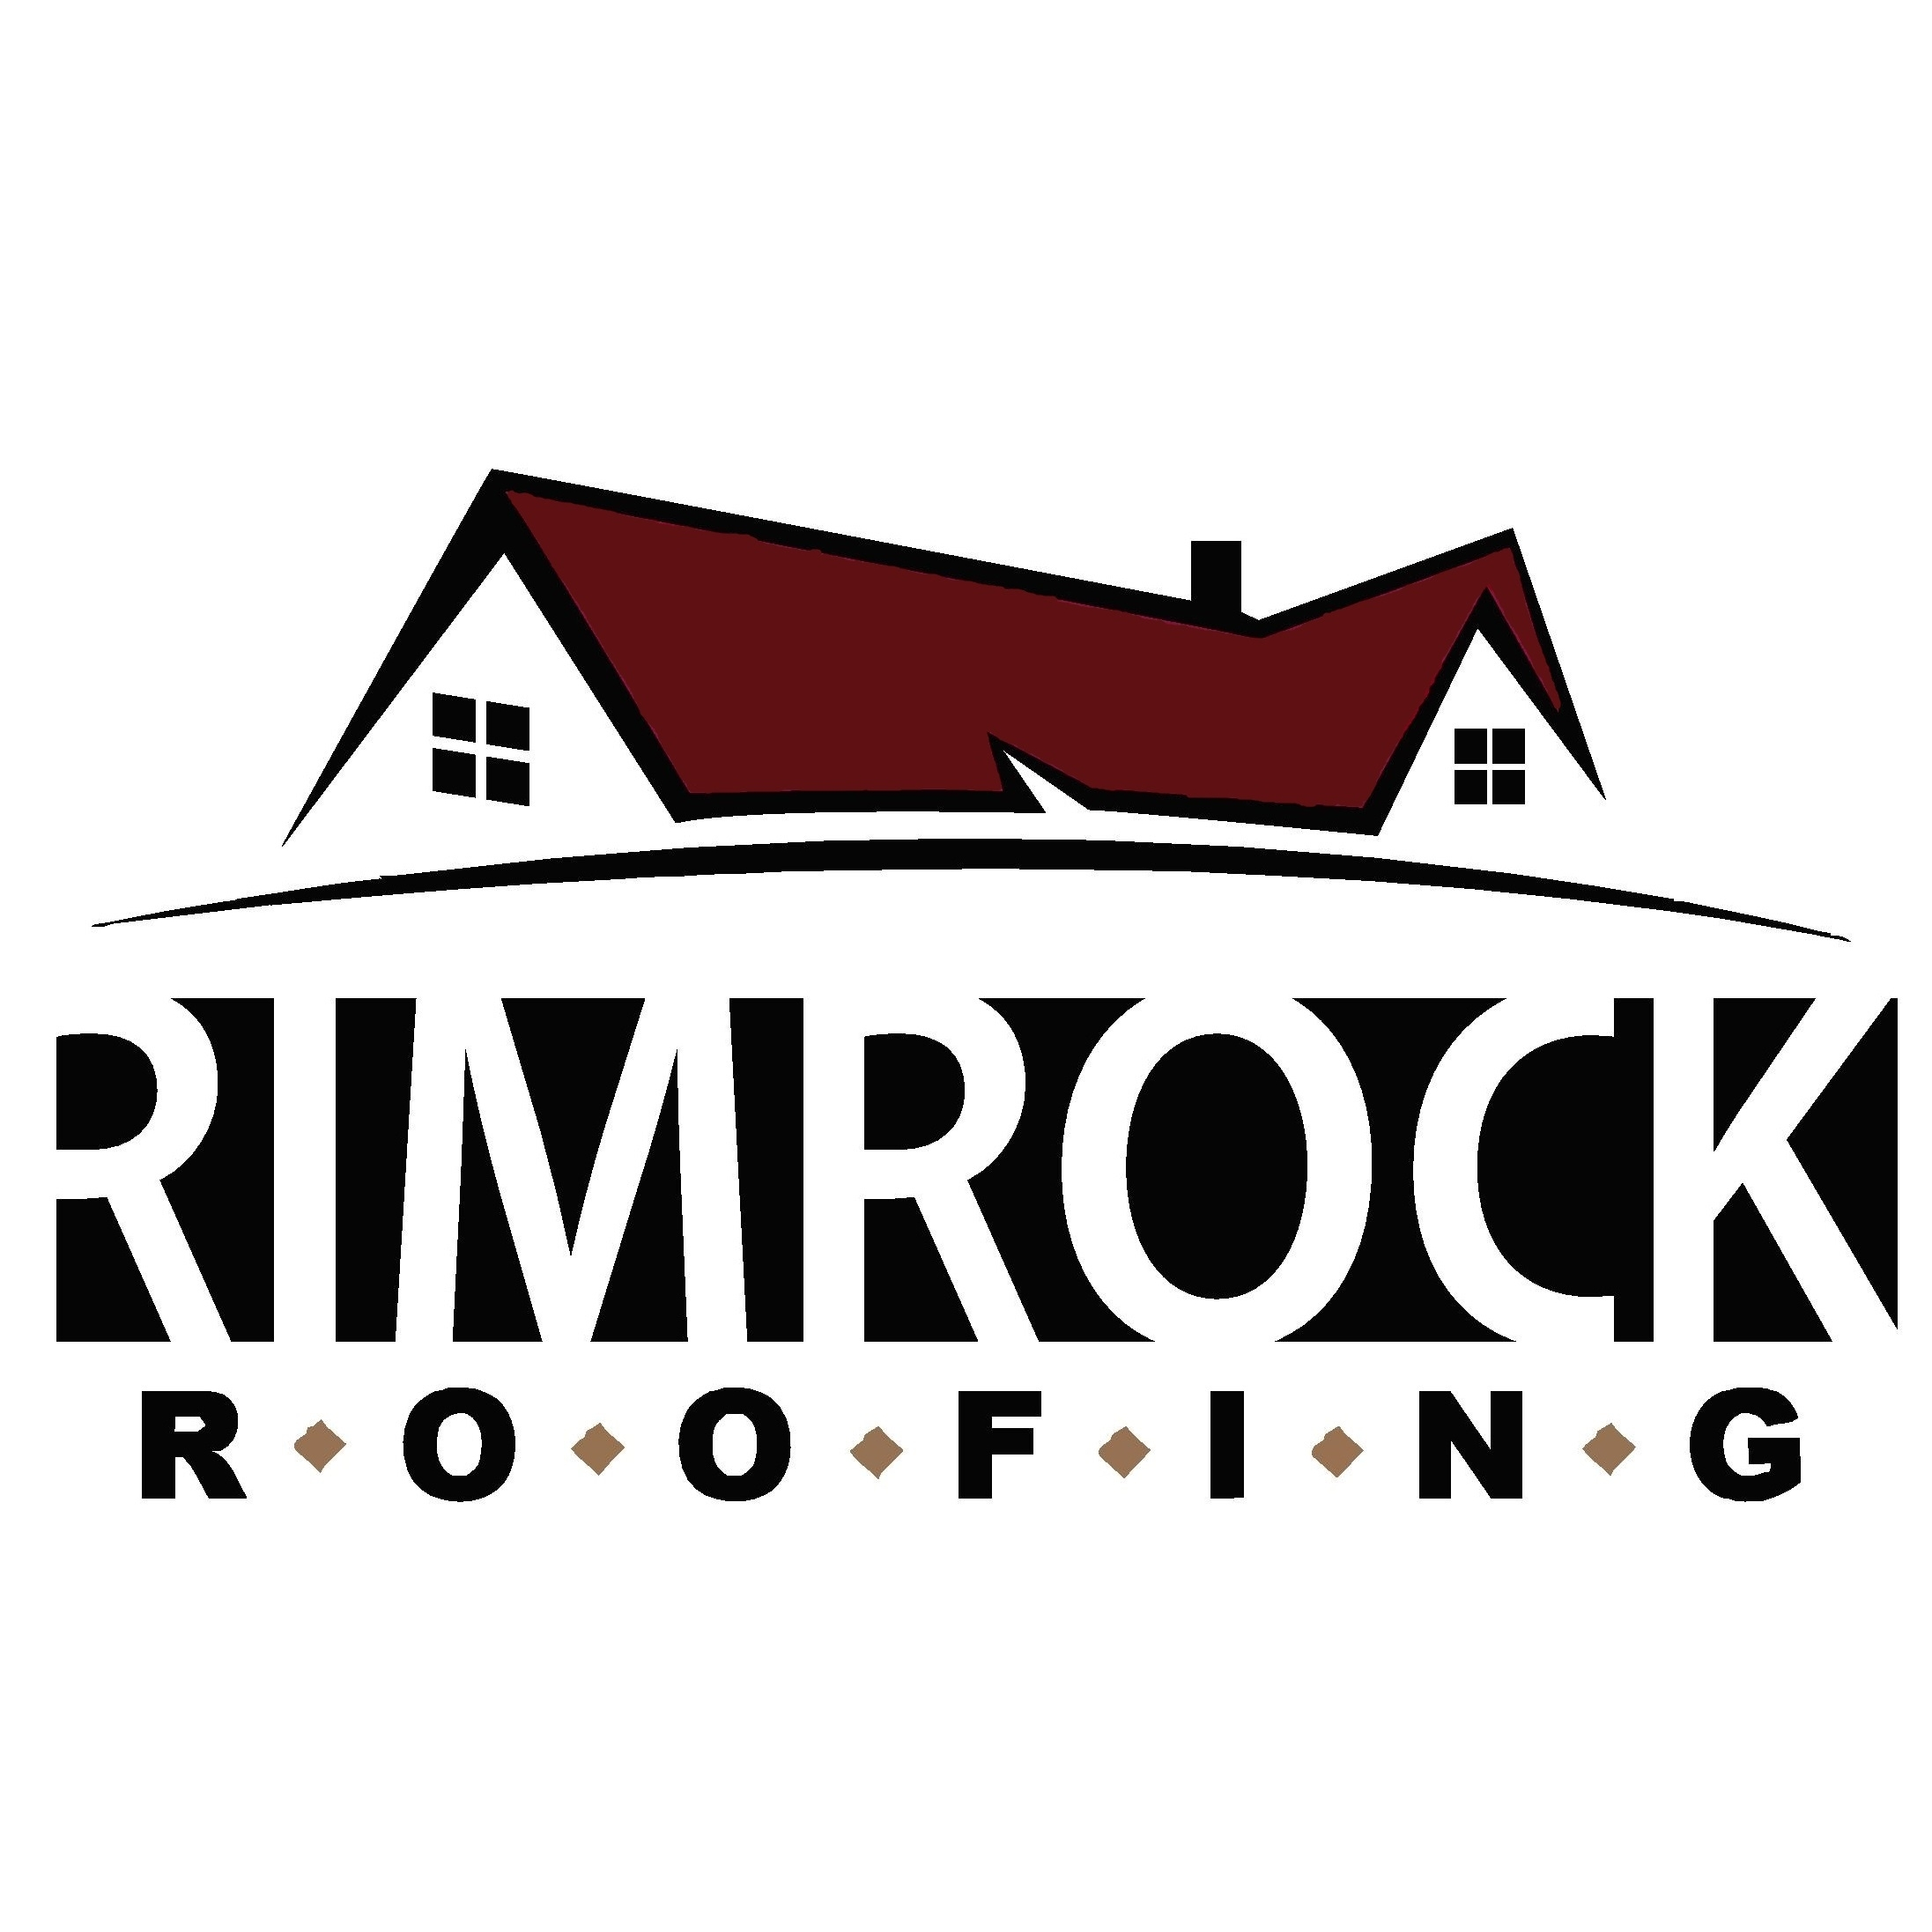 Rimrock Roofing | Roofing Contractor in Billings, MT